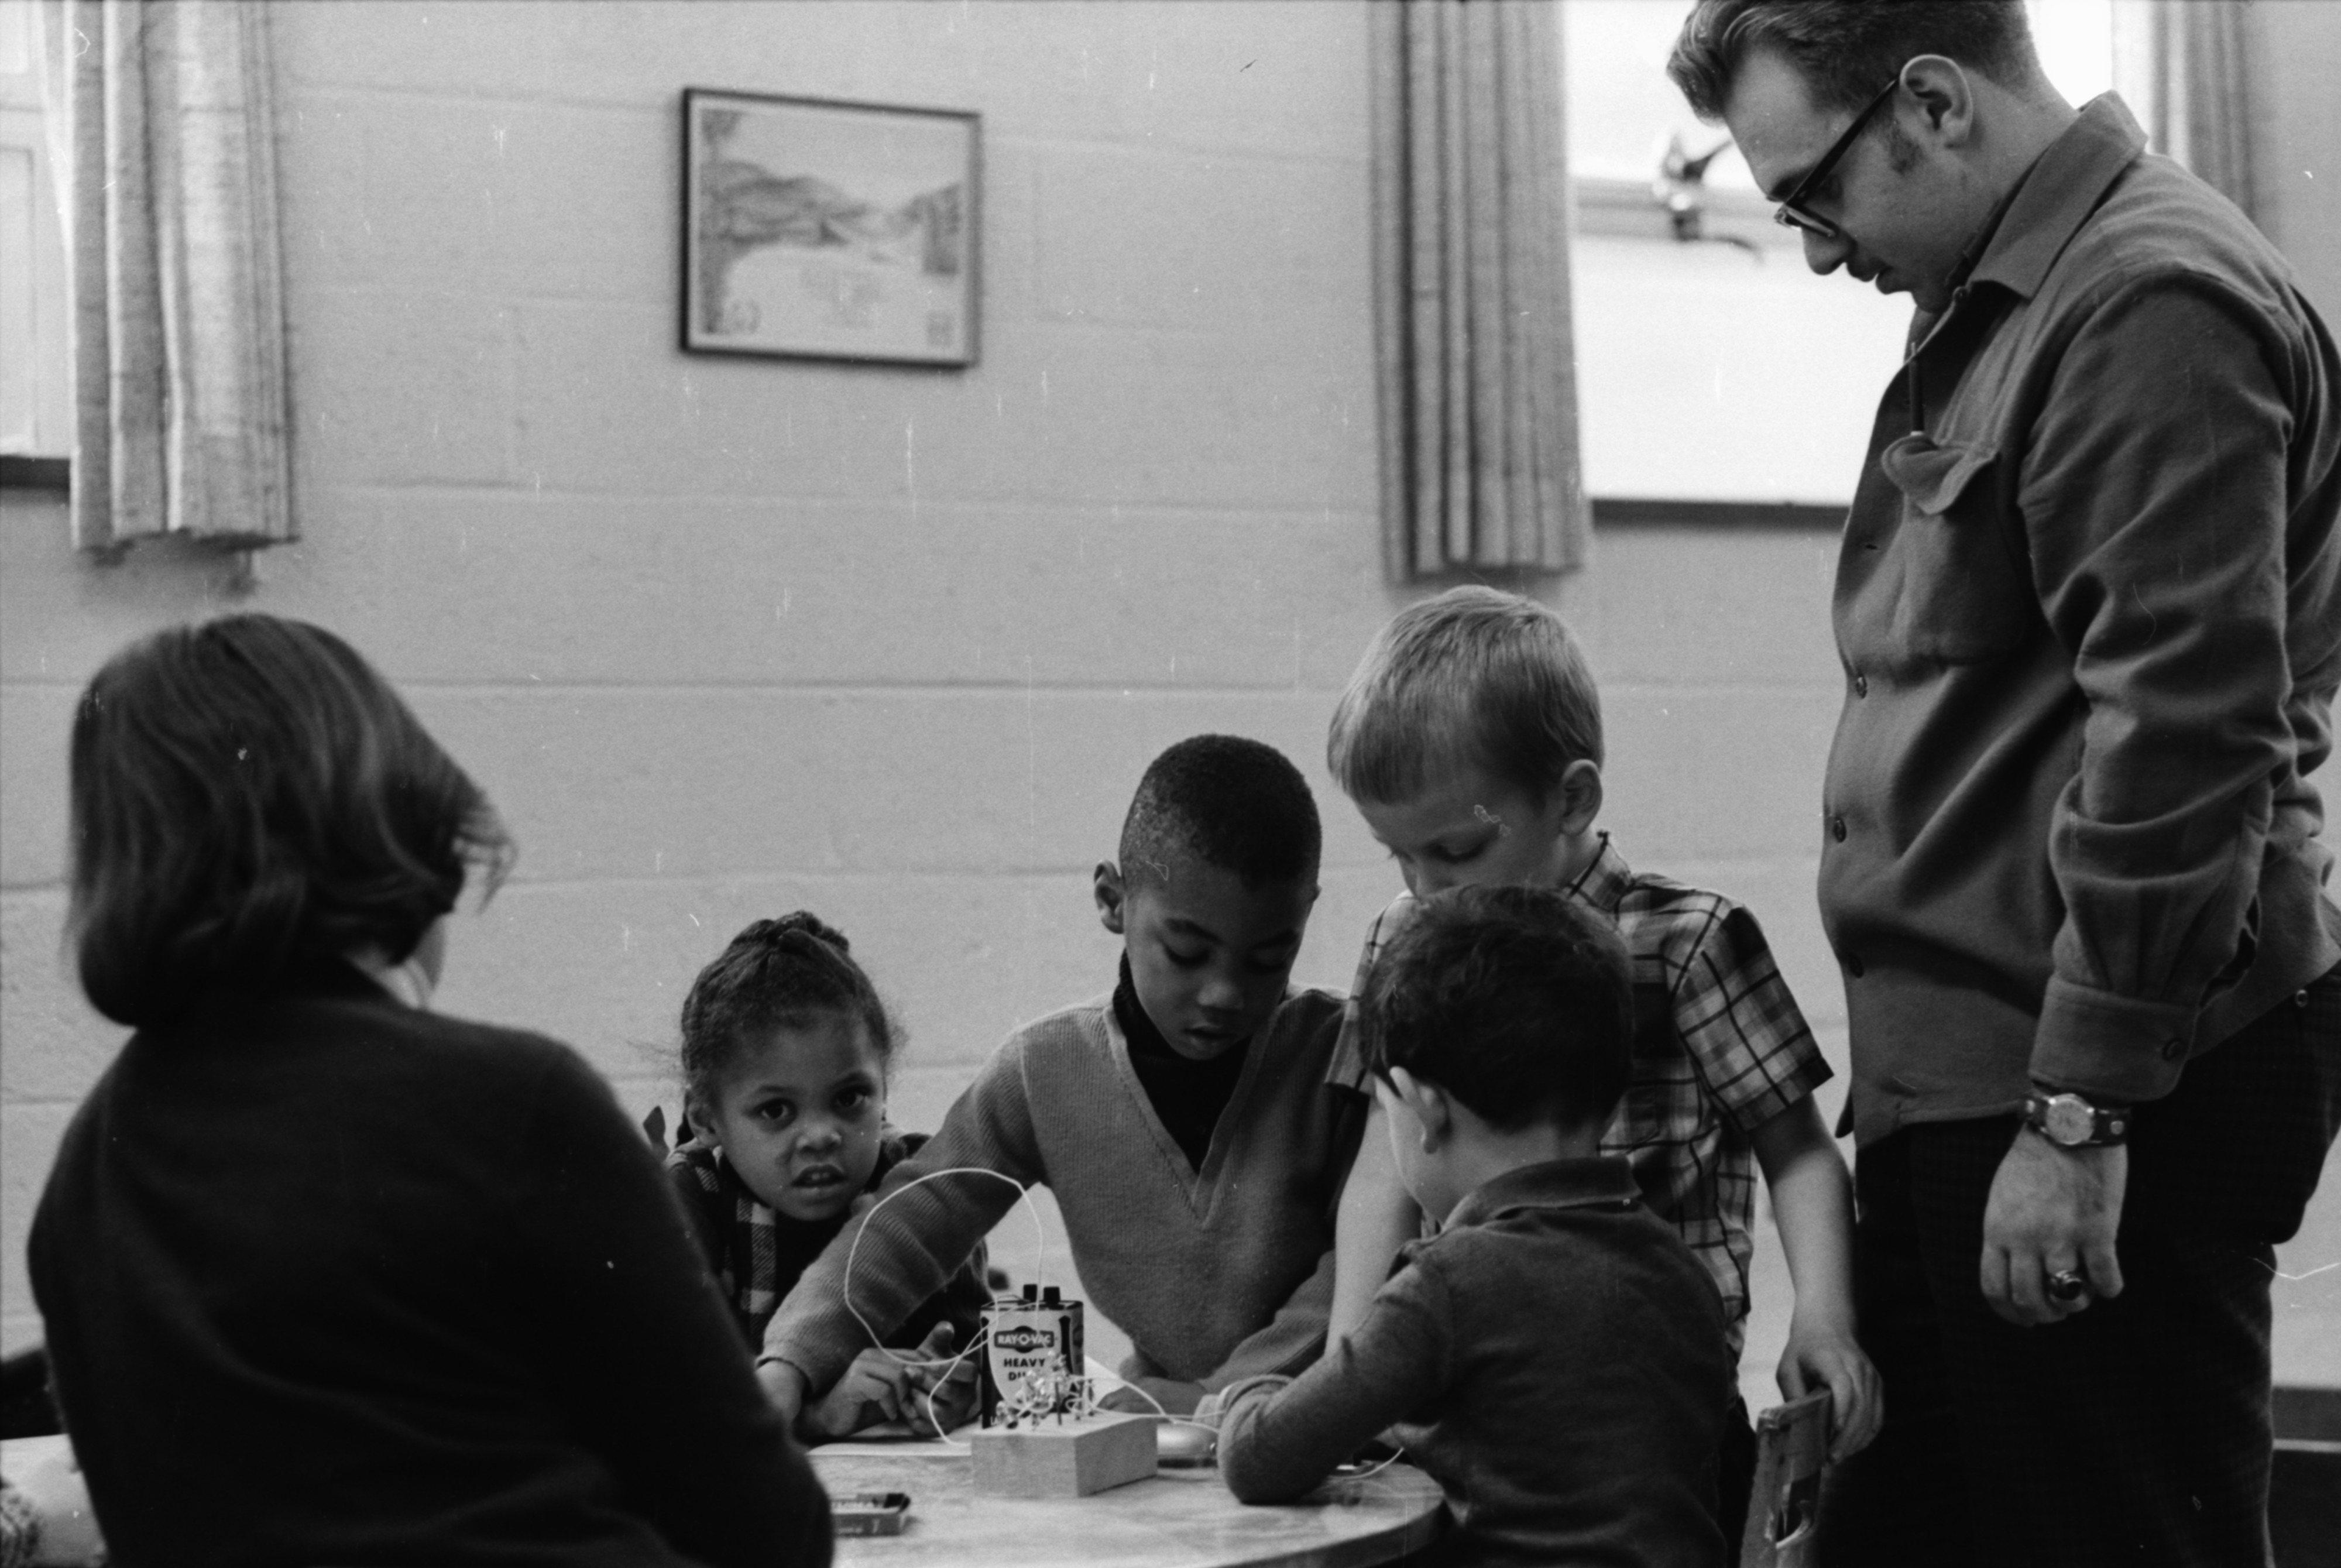 University Student James Buscetta Explains The Fundamentals Of Electrical Power To Preschoolers, February 1969 image